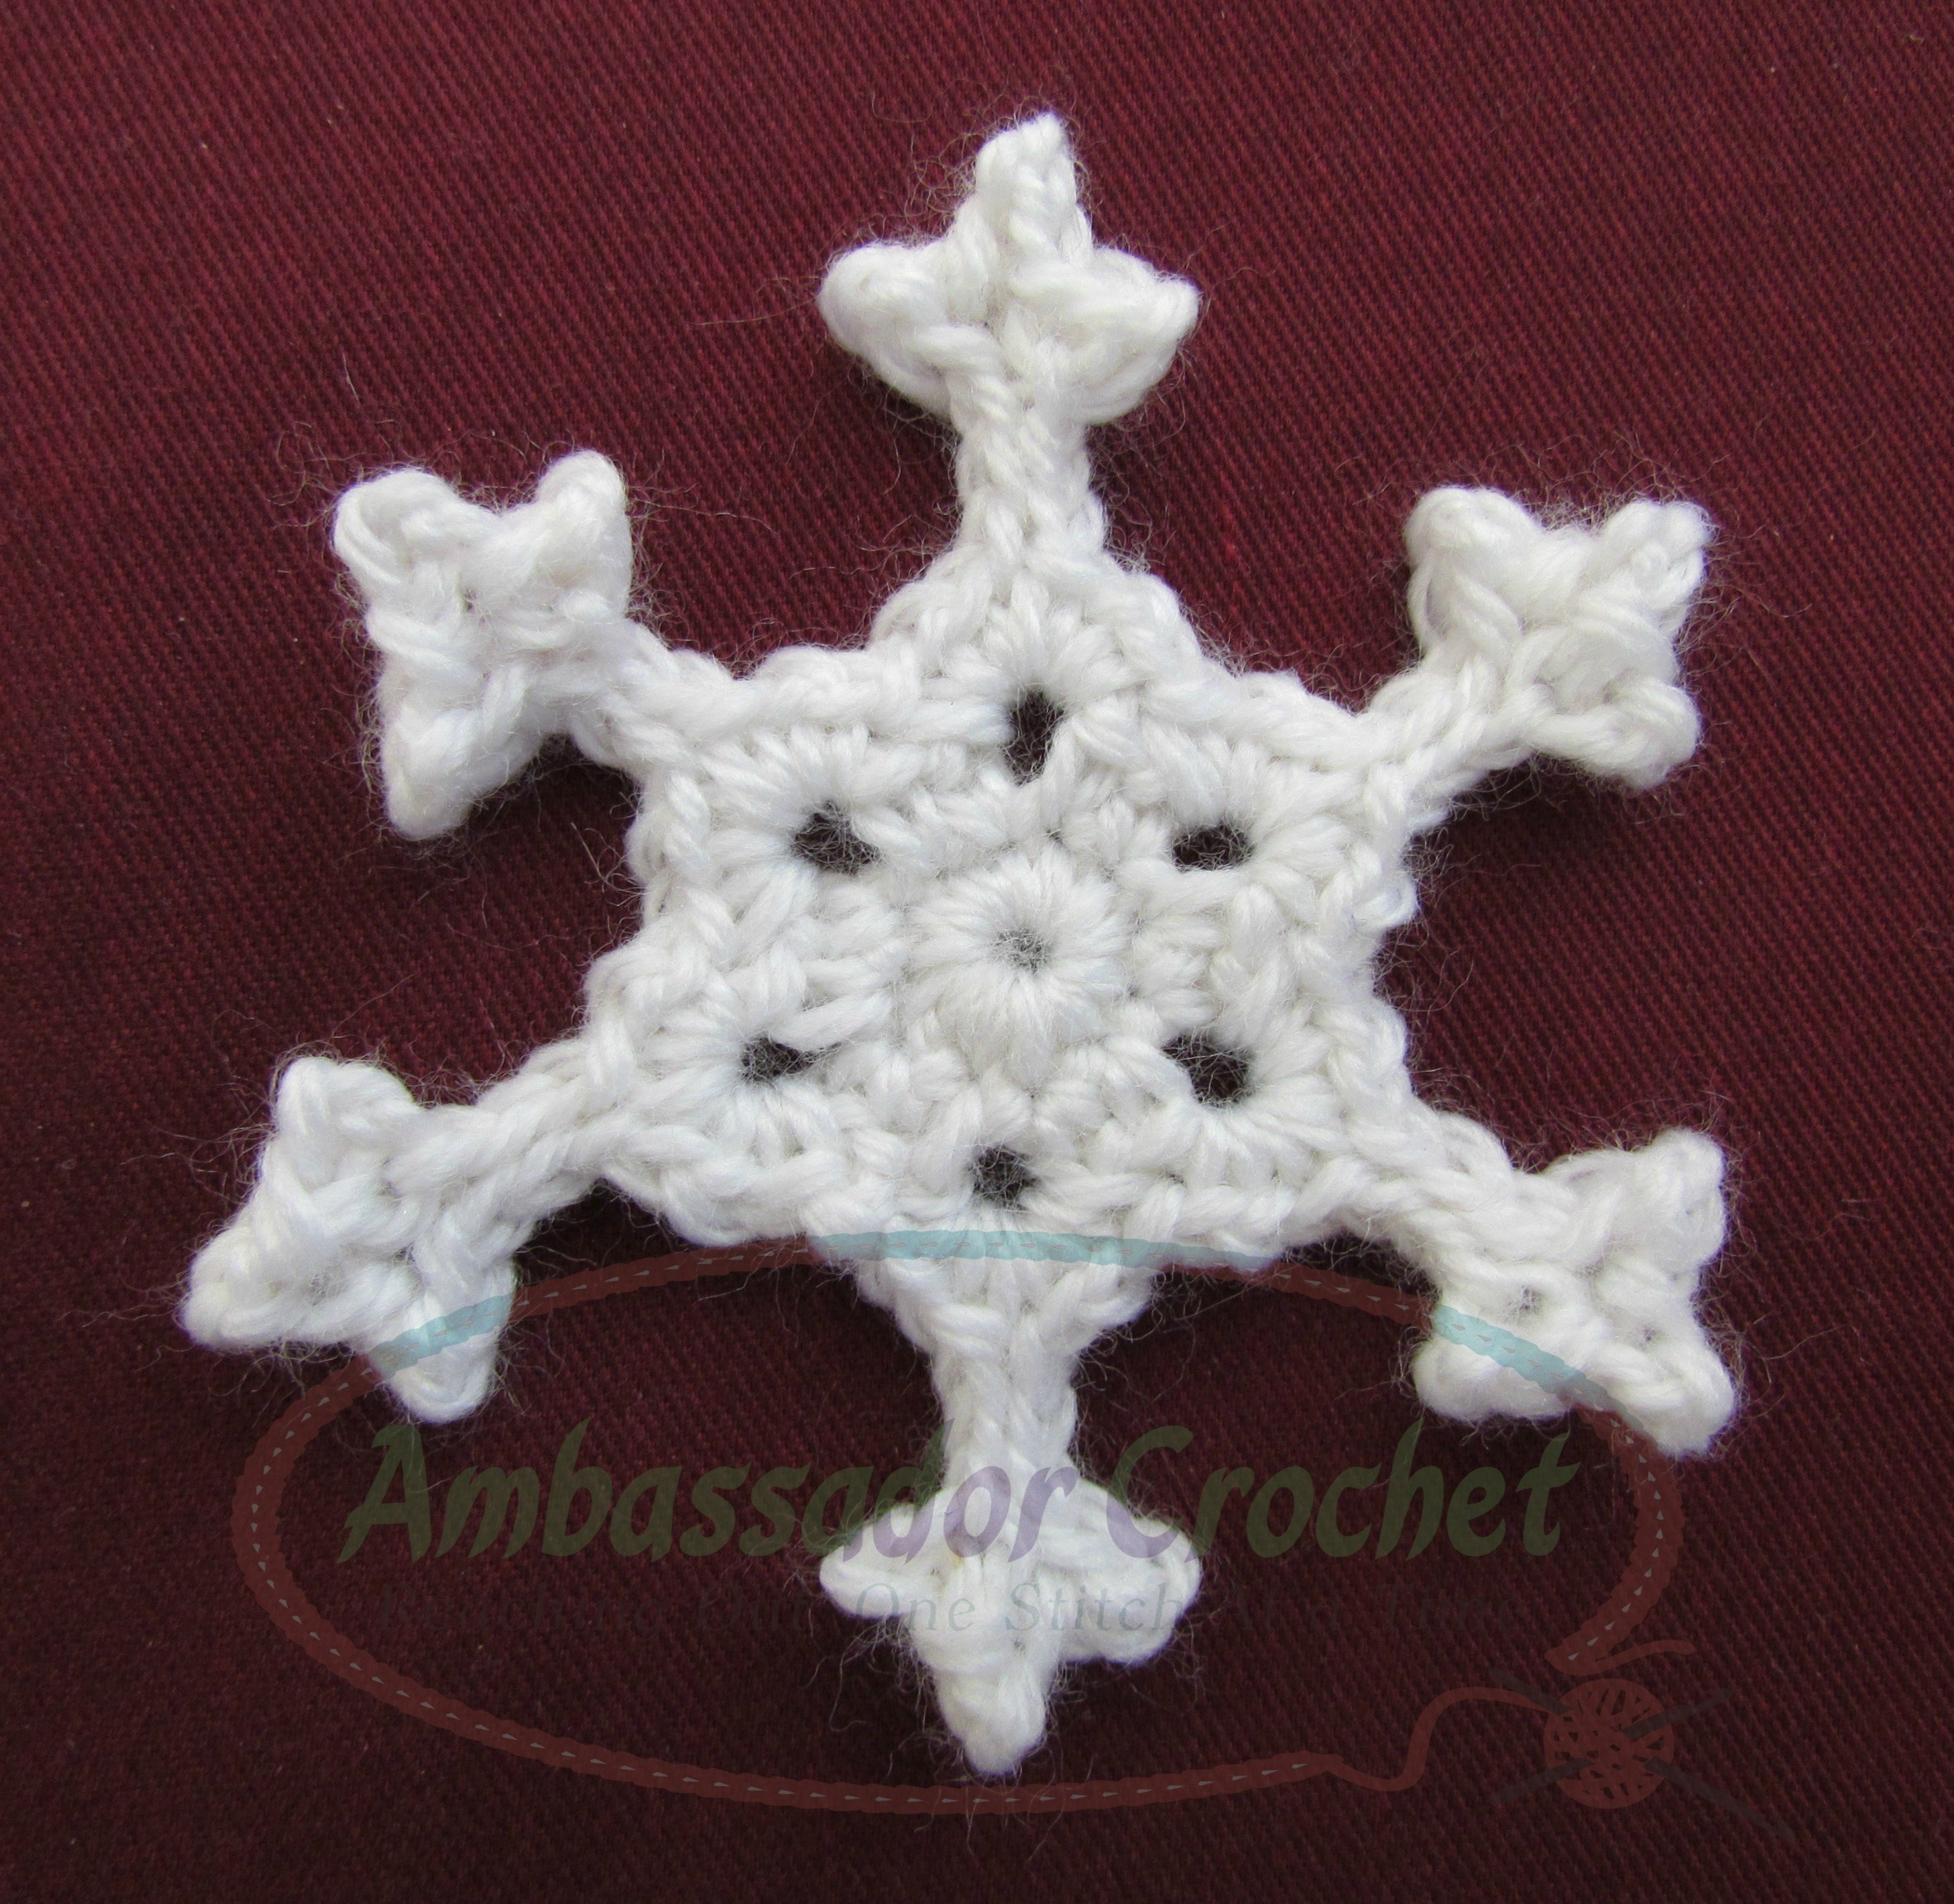 Crochet Snowflake Pattern New Crocheted Snowflake Pattern Ambassador Crochet Of Wonderful 50 Photos Crochet Snowflake Pattern